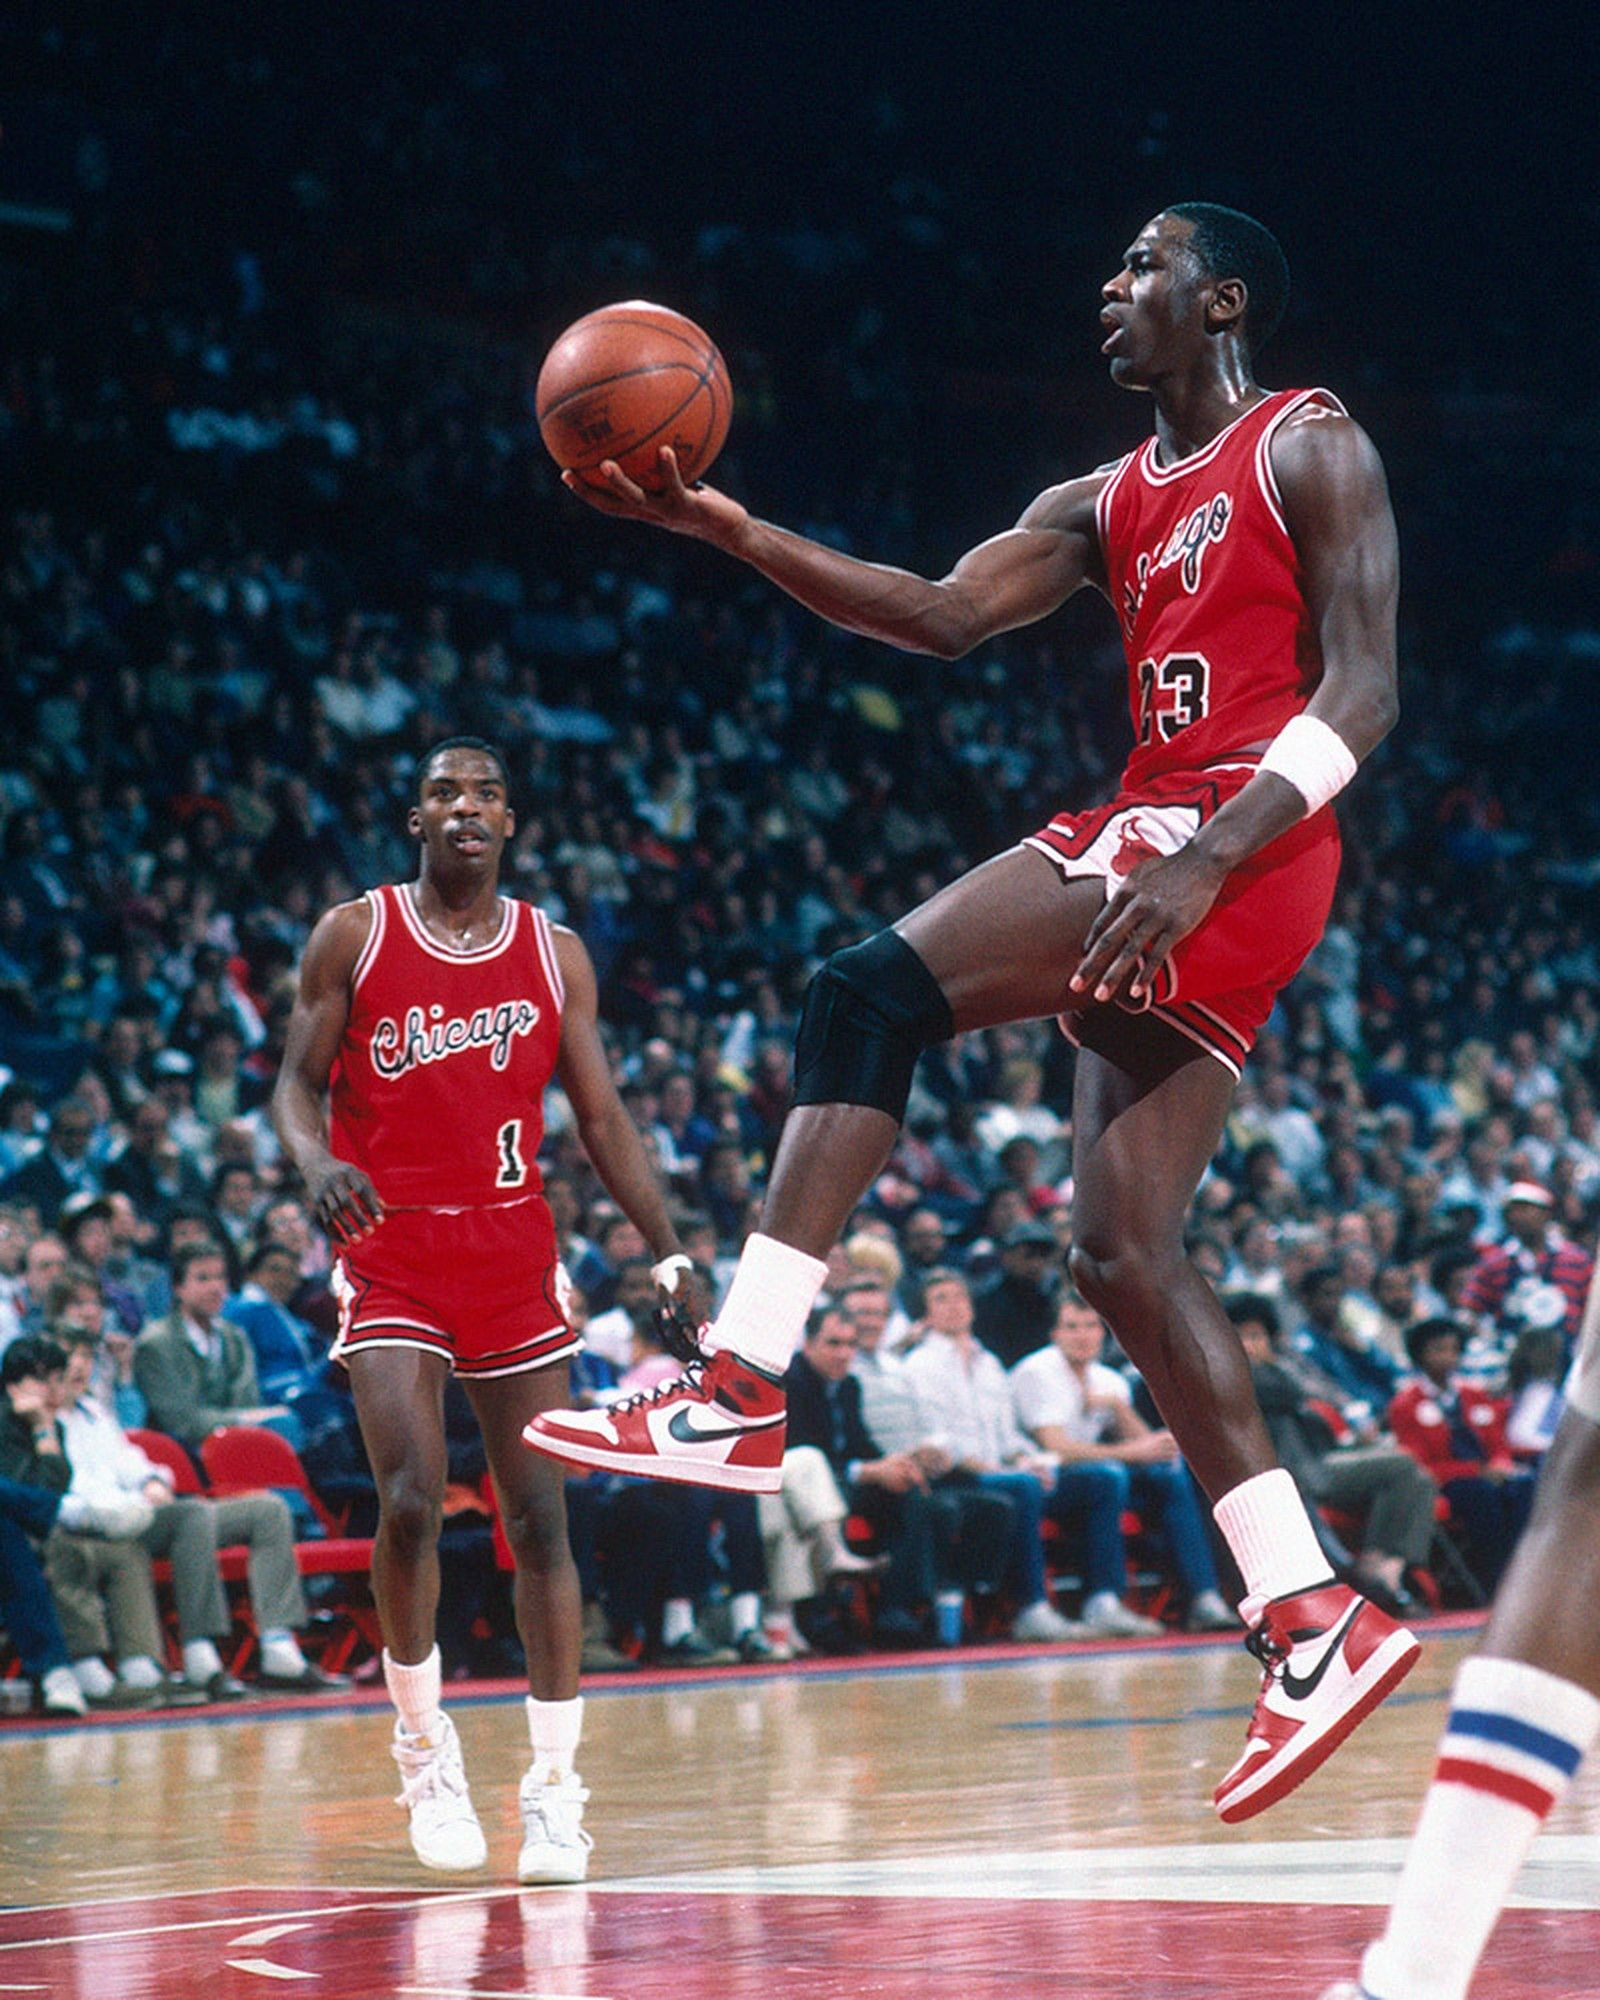 The Evolution Of The Air Jordan: How a Sports Sneaker Transformed ...